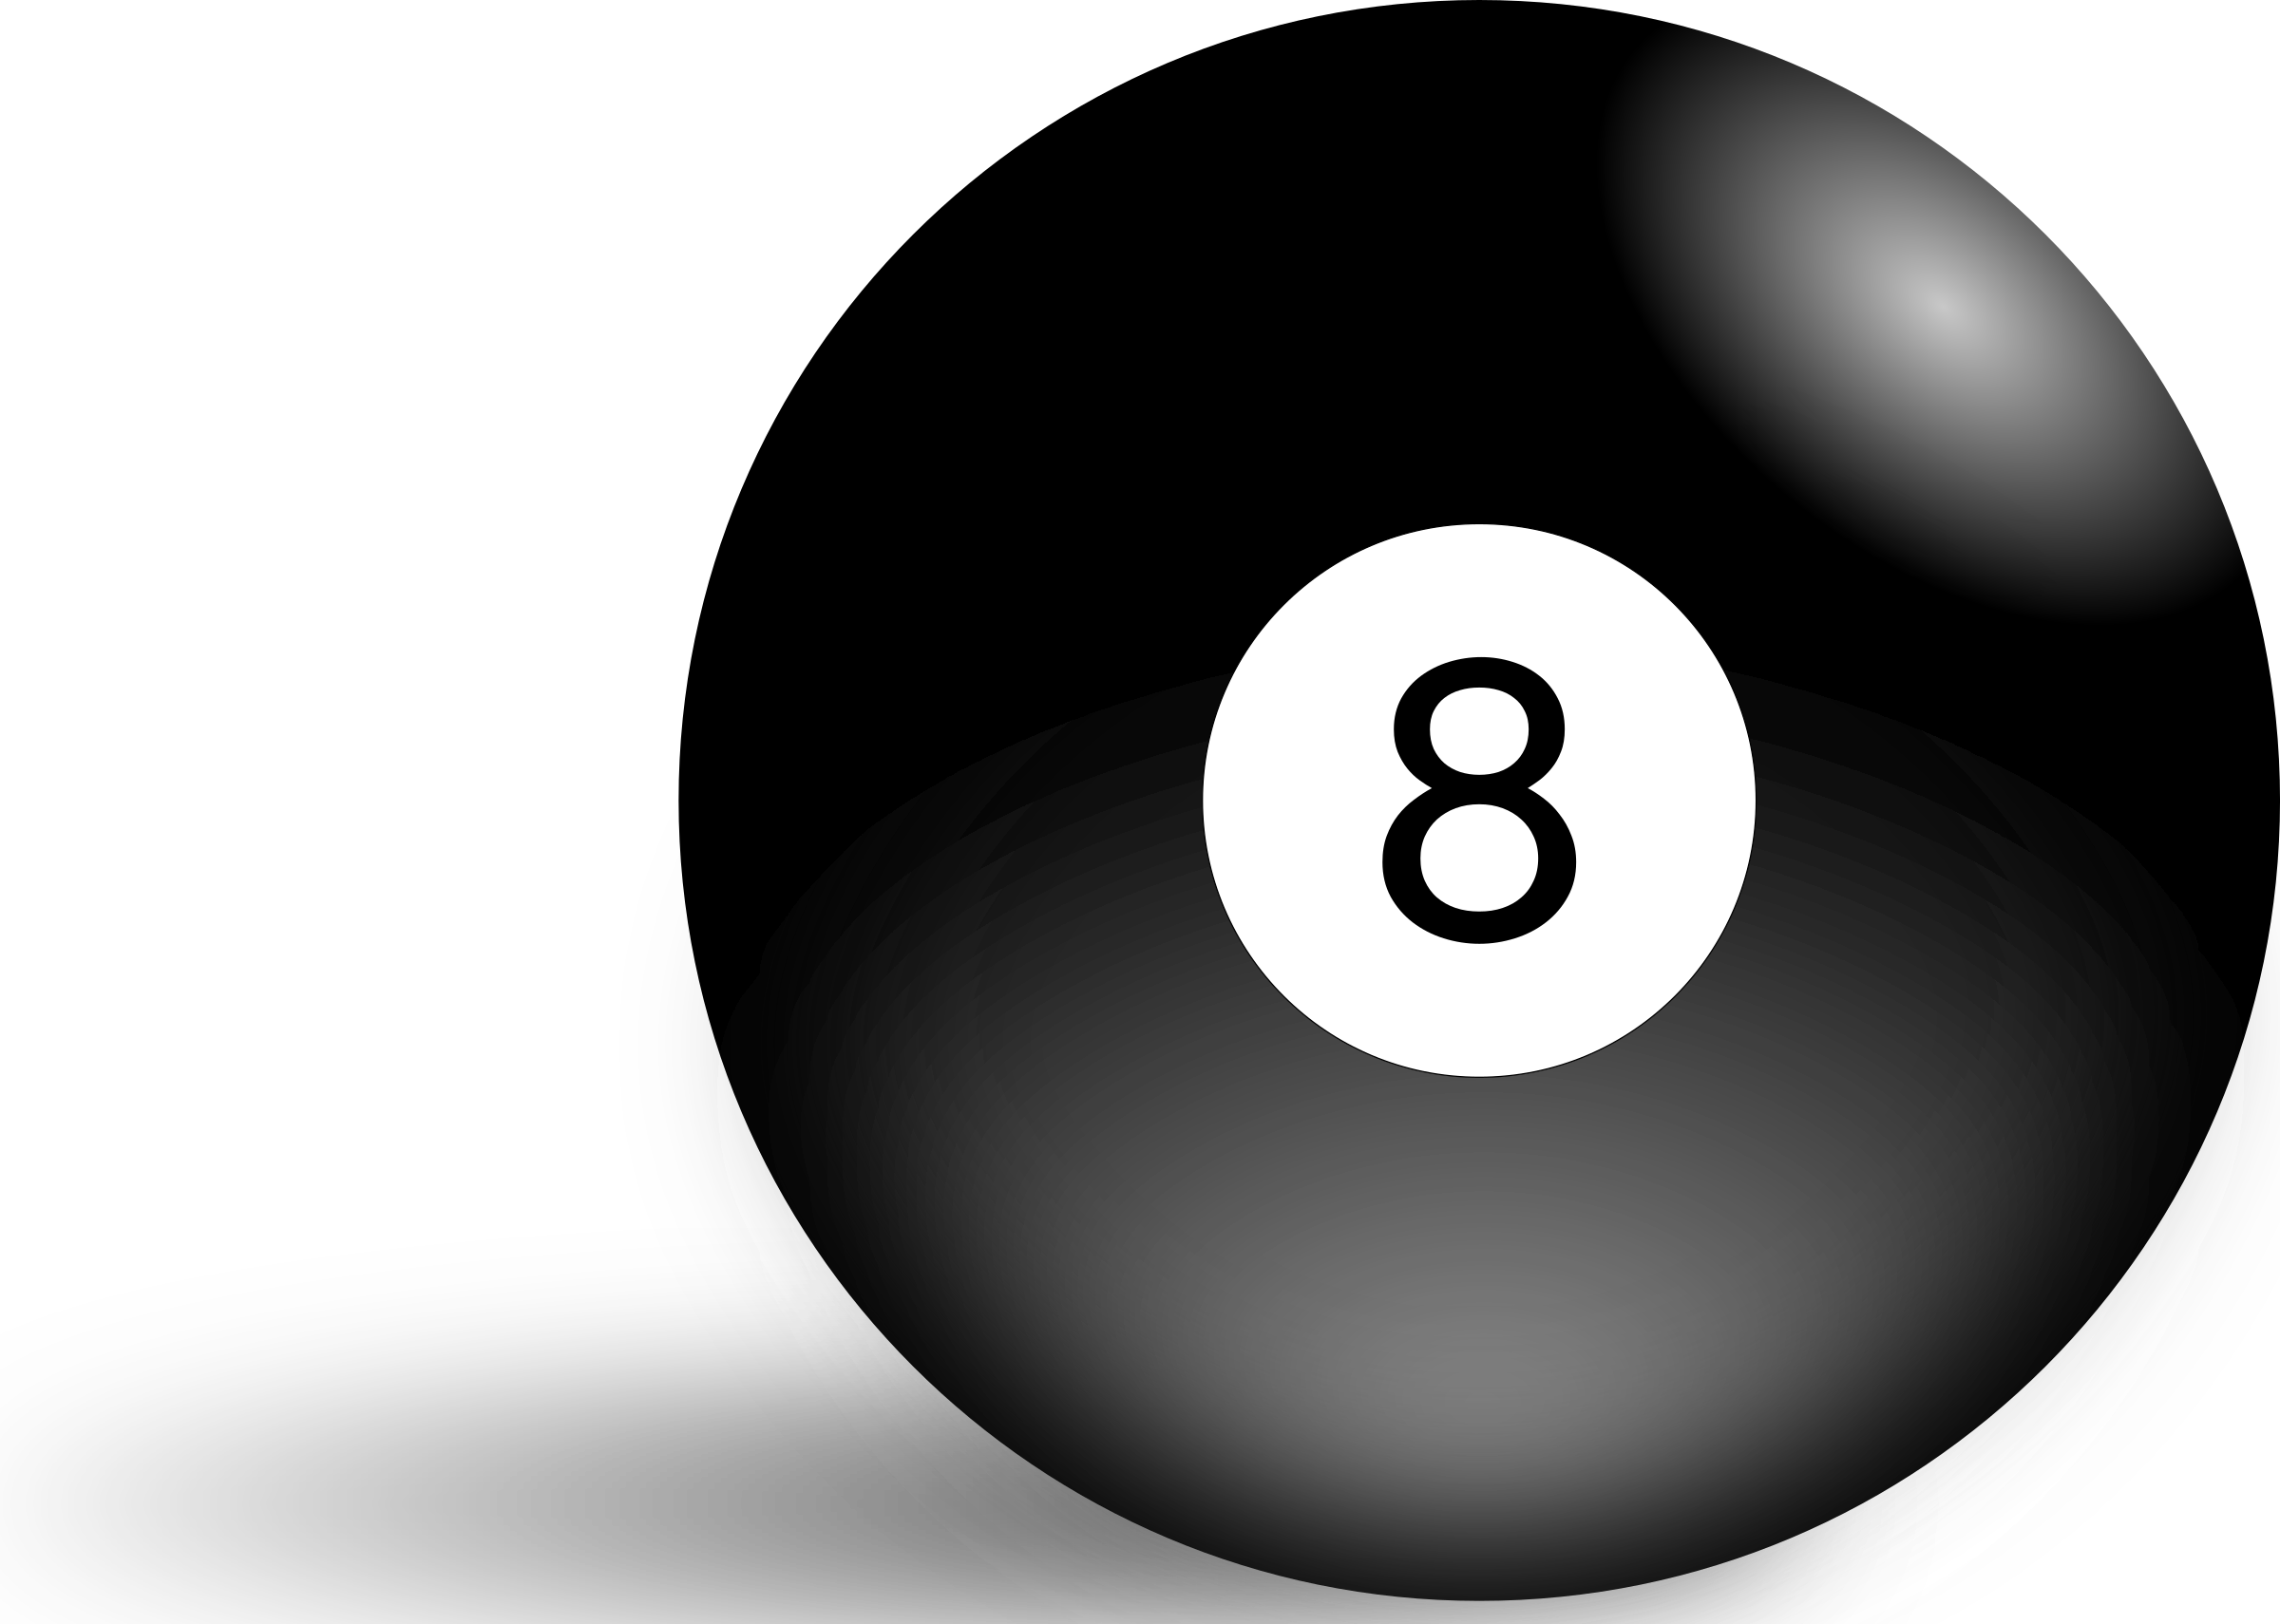 8ball by narrowhouse